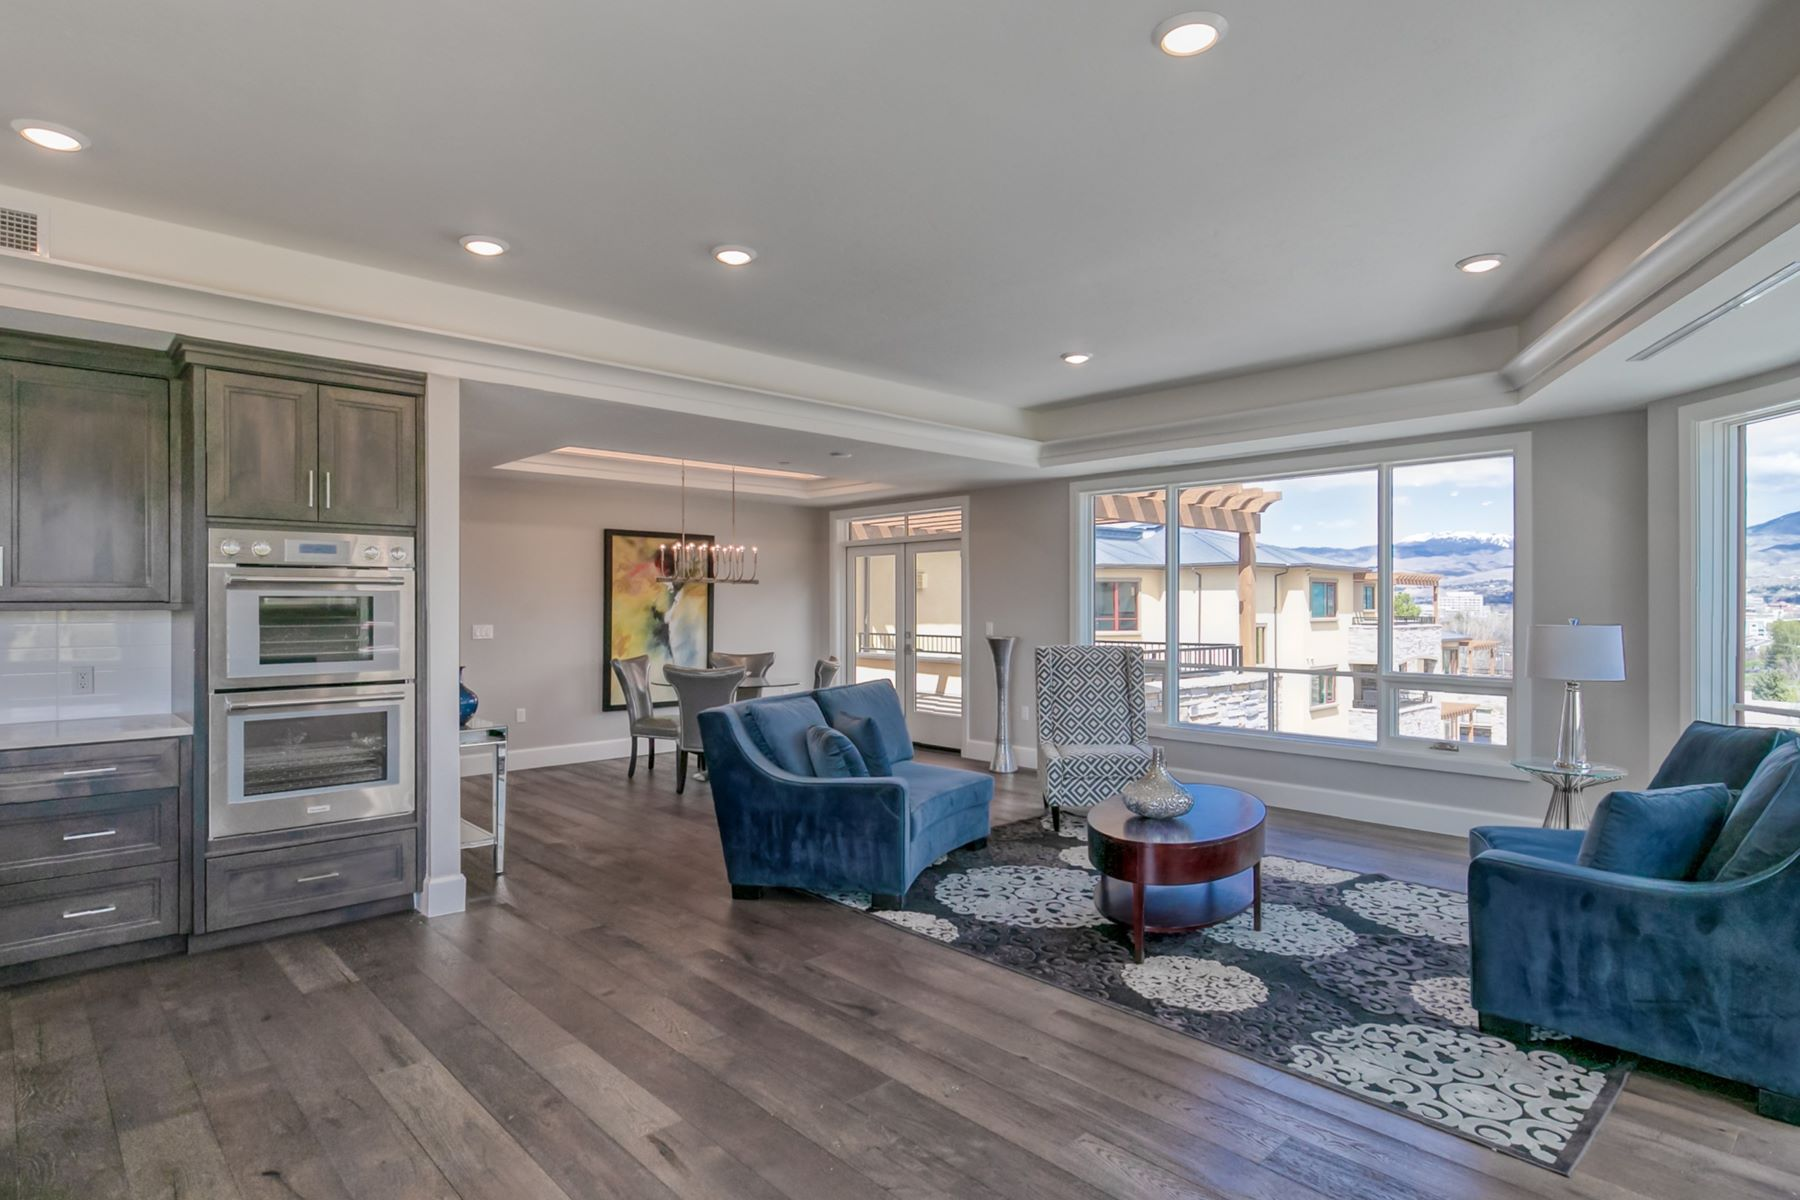 Condominiums for Active at 3075 West Crescent Rim Drive 304 304 Boise, Idaho 83706 United States